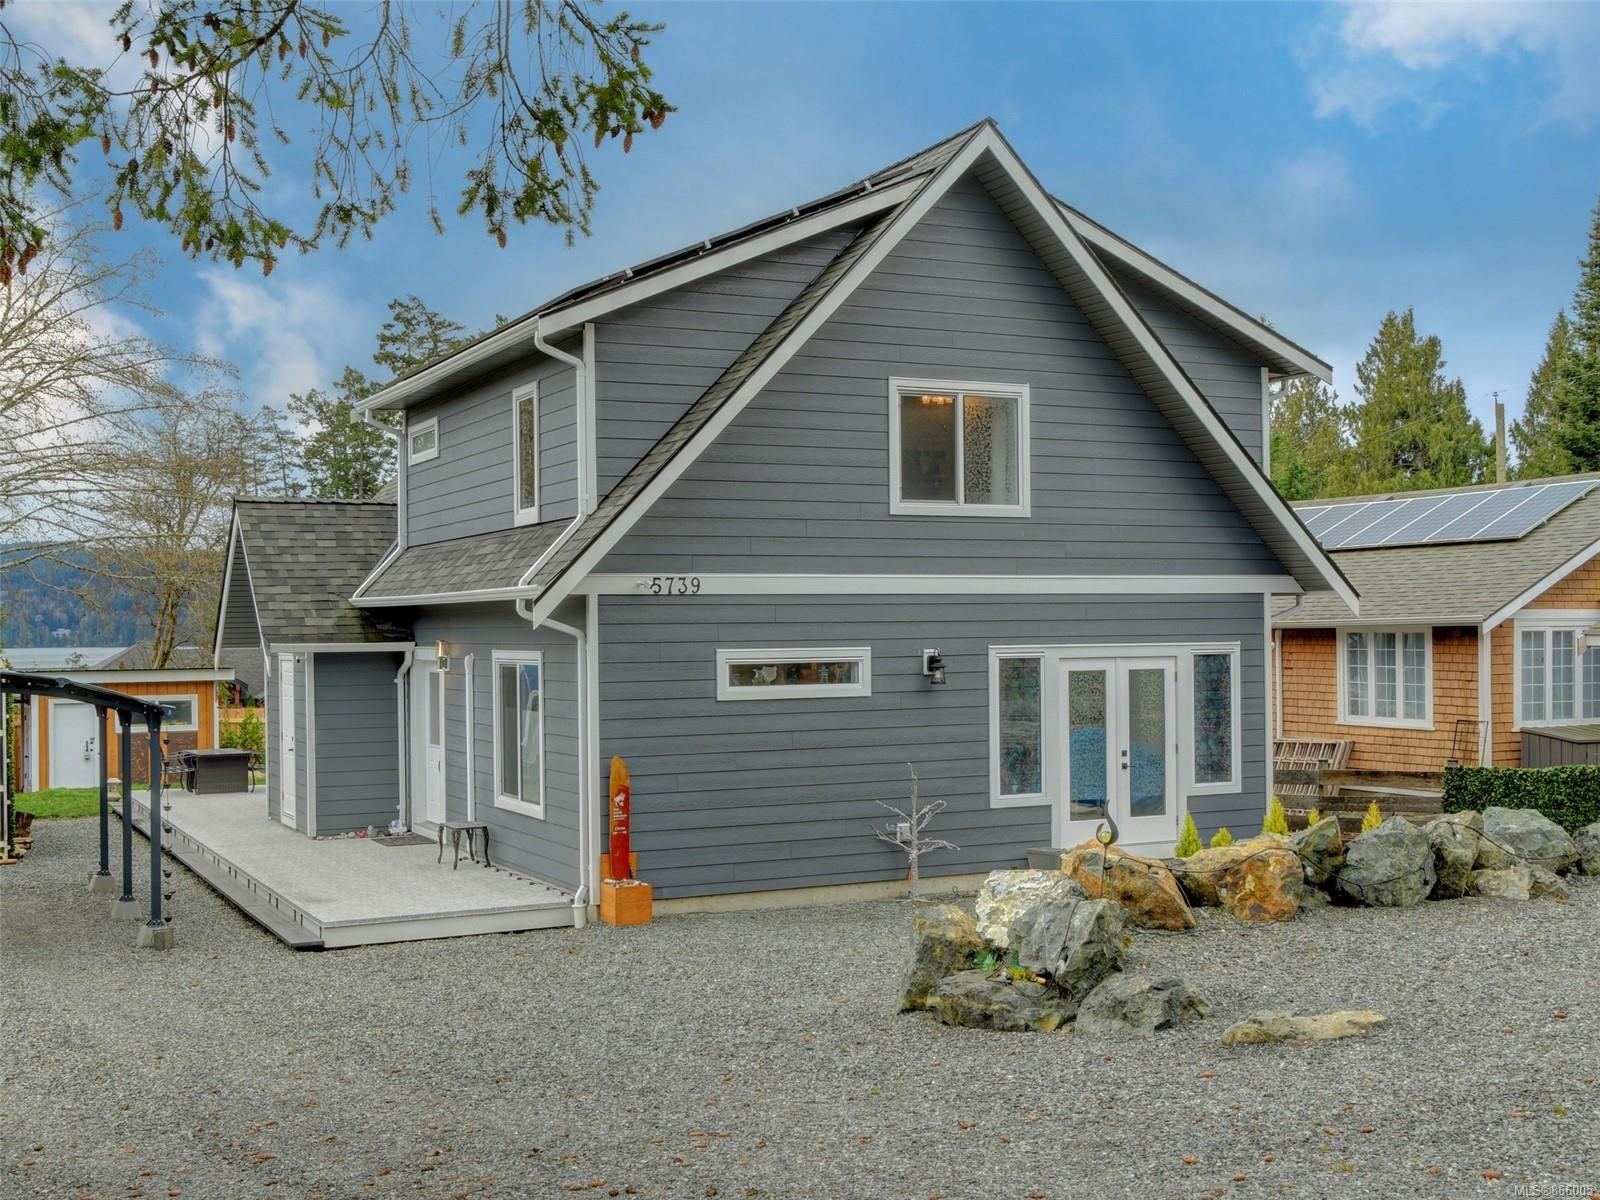 Main Photo: 5739 Siasong Rd in : Sk Saseenos House for sale (Sooke)  : MLS®# 866005